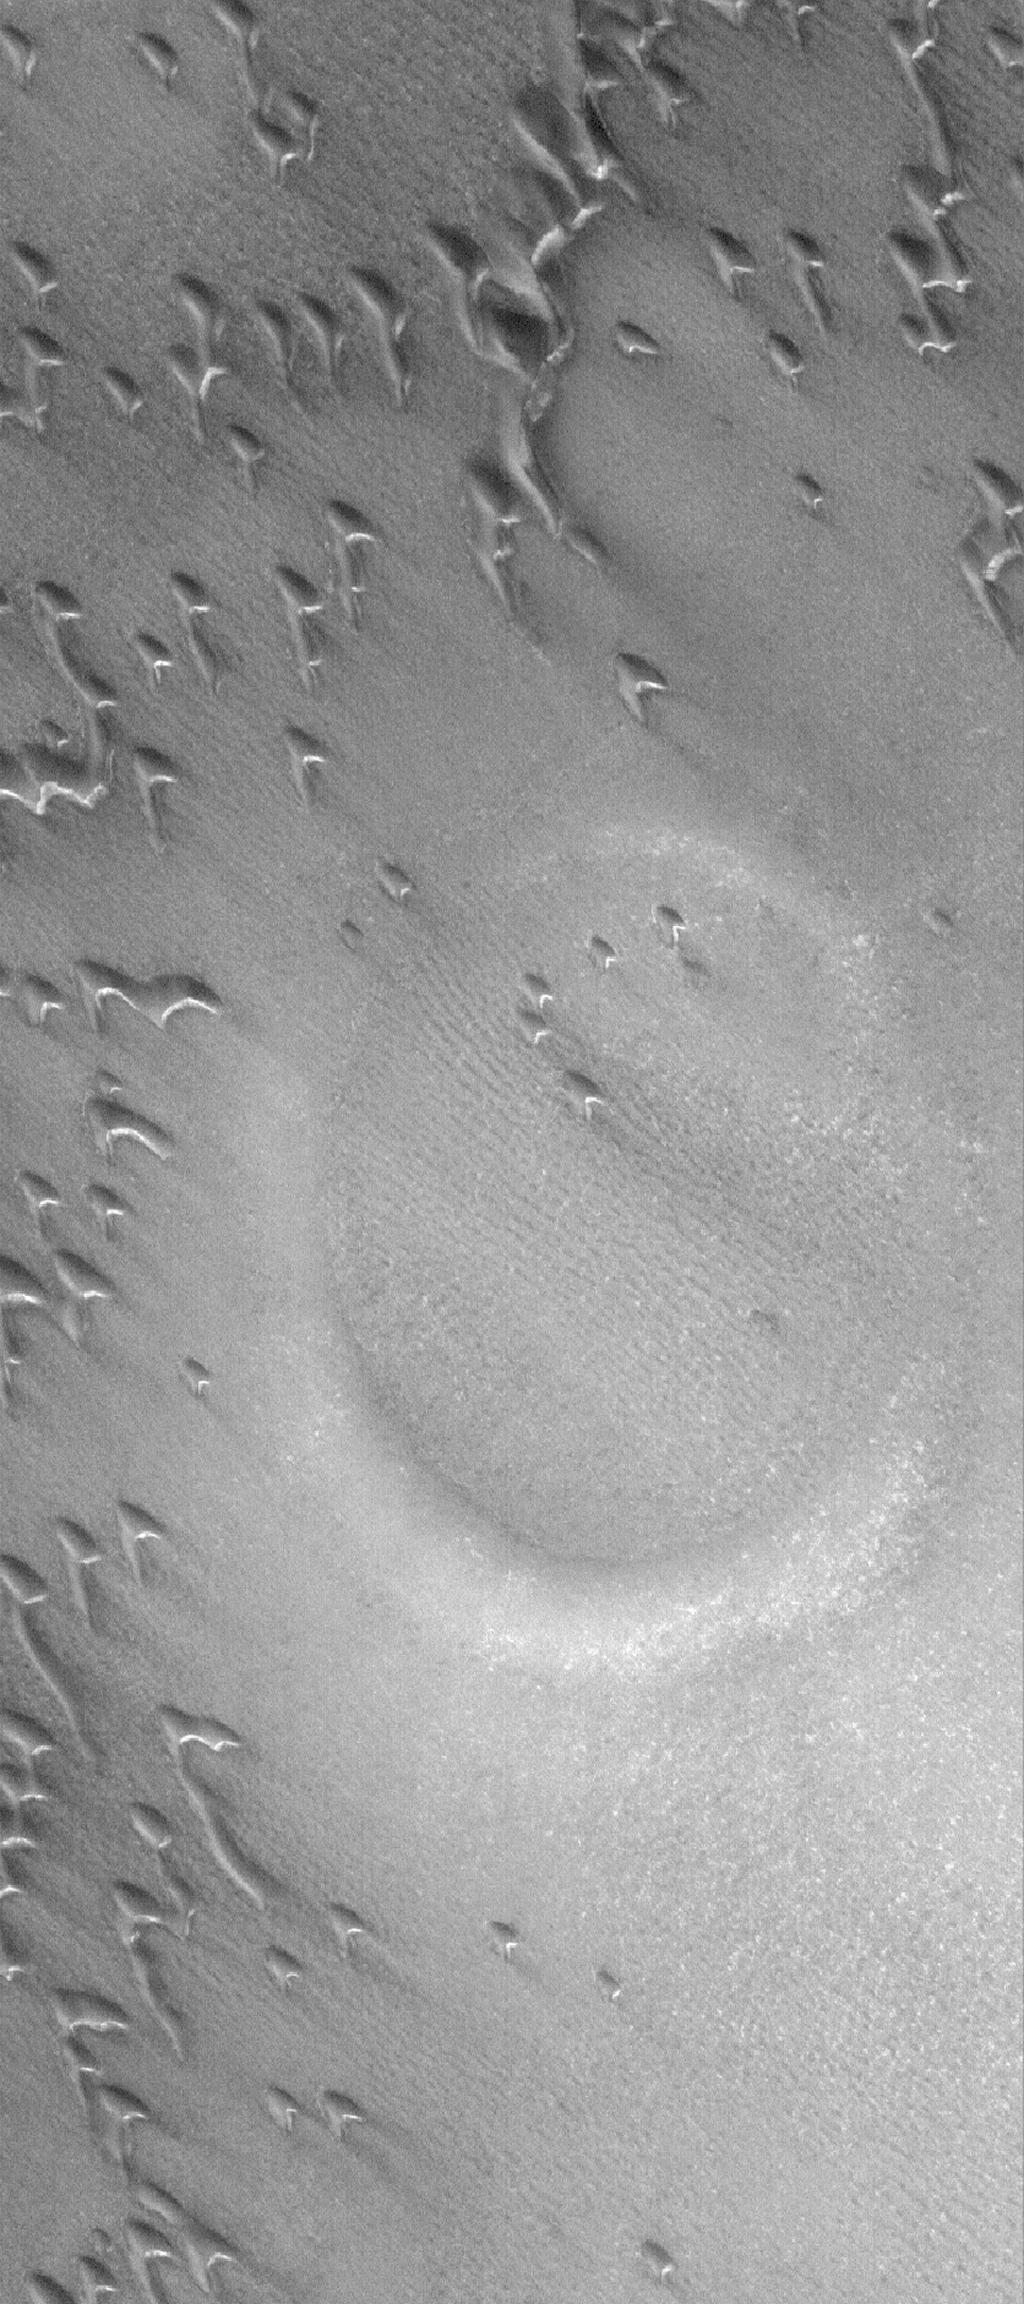 This image from NASA's Mars Global Surveyor shows a partially-buried crater in the north polar region of Mars. A circular feature is surrounded and partly overlain by some of the many, many sand dunes in the area.